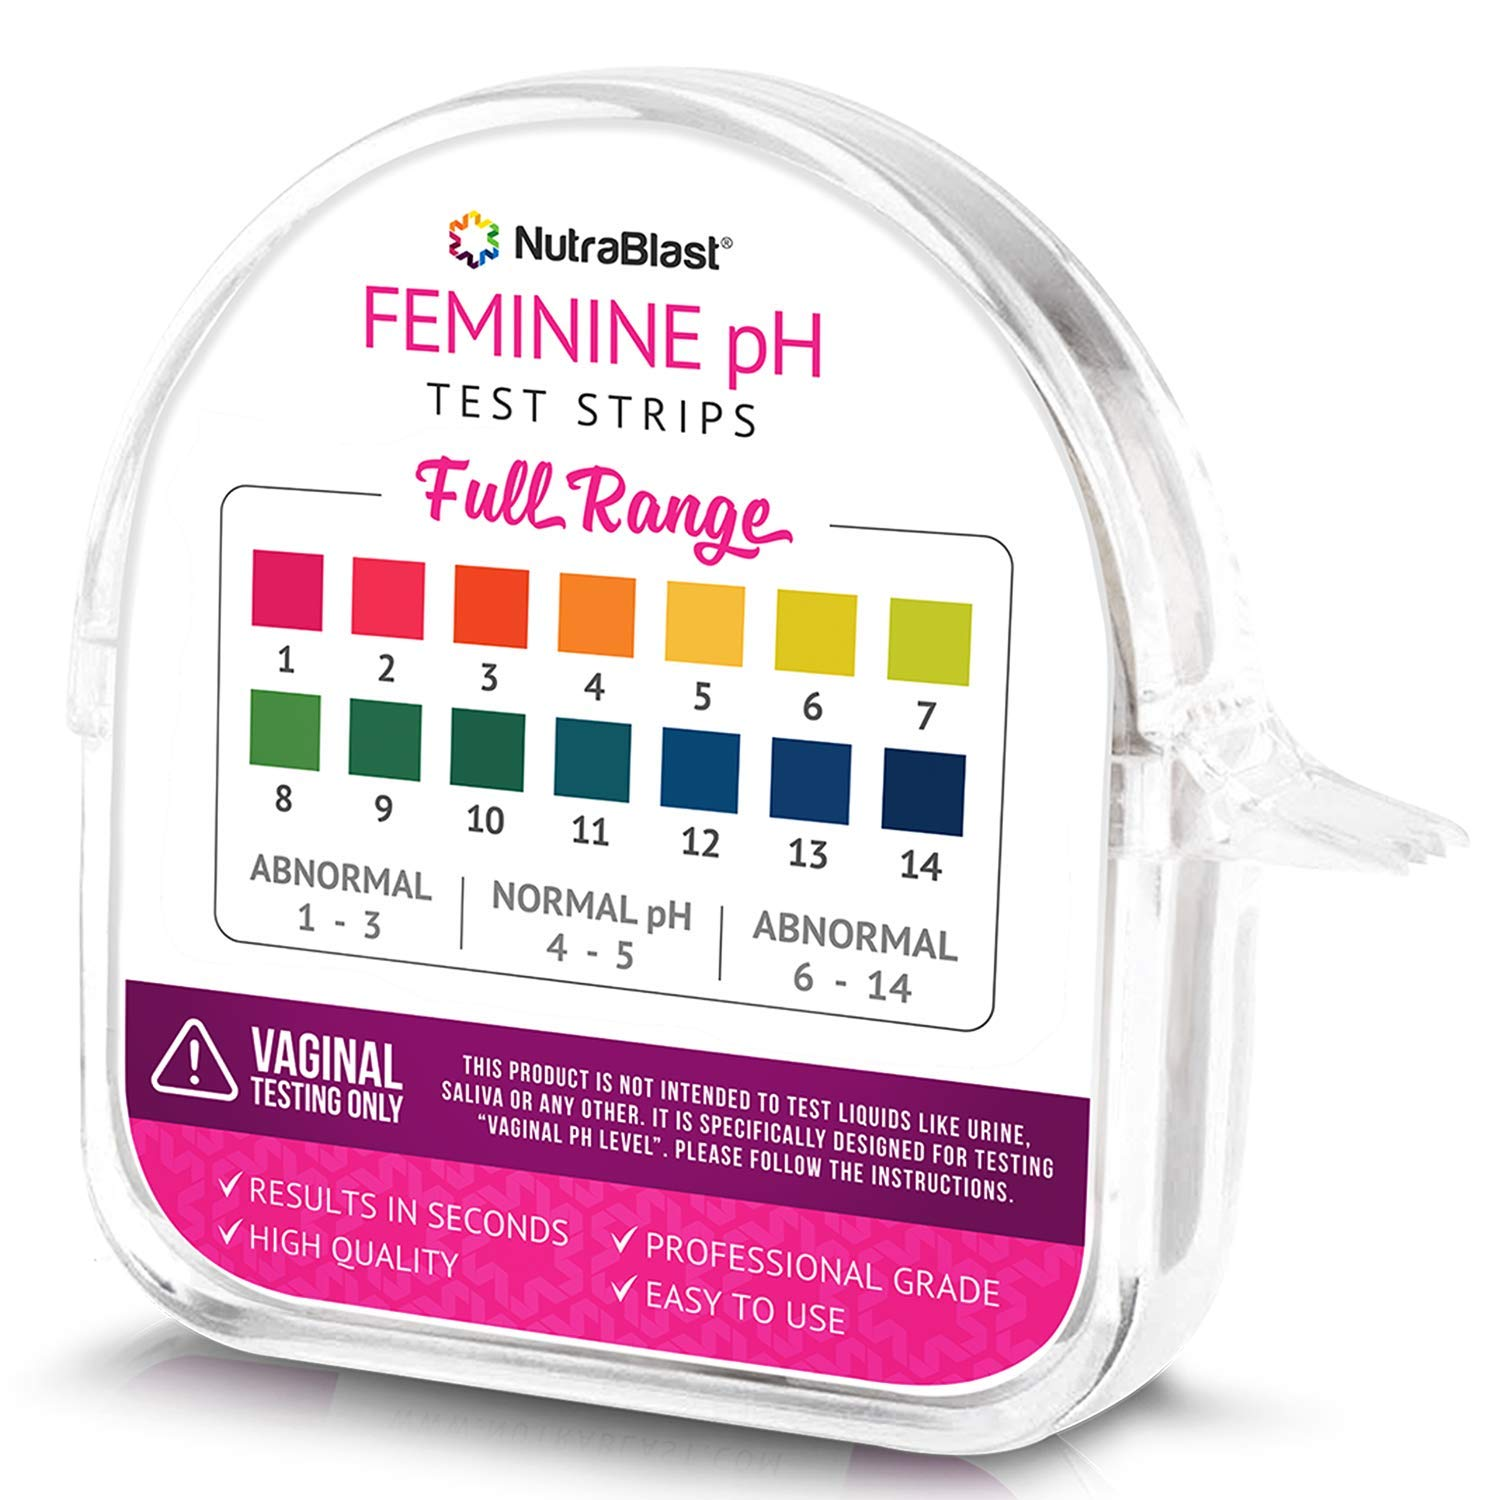 Nutrablast Feminine pH Test Strips Full Range 1-14 | Monitor Vaginal Intimate Health & Prevent Infections | Easy to Use & Accurate Women's Acidity & Alkalinity Balance Level Tester Kit